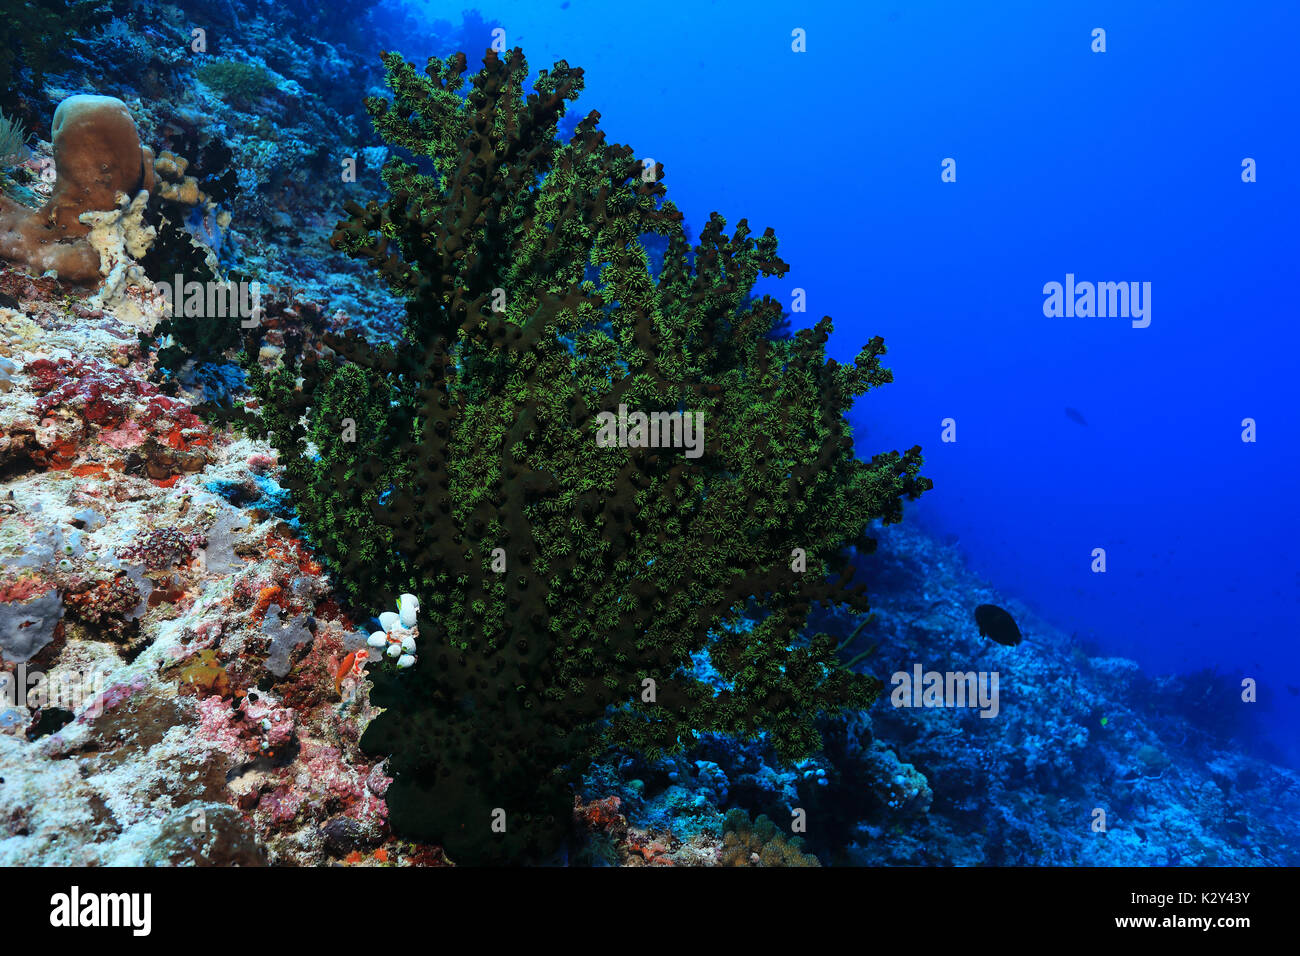 Black sun coral (Tubastrea miracanthus) underwater in the coral reef of the indian ocean - Stock Image